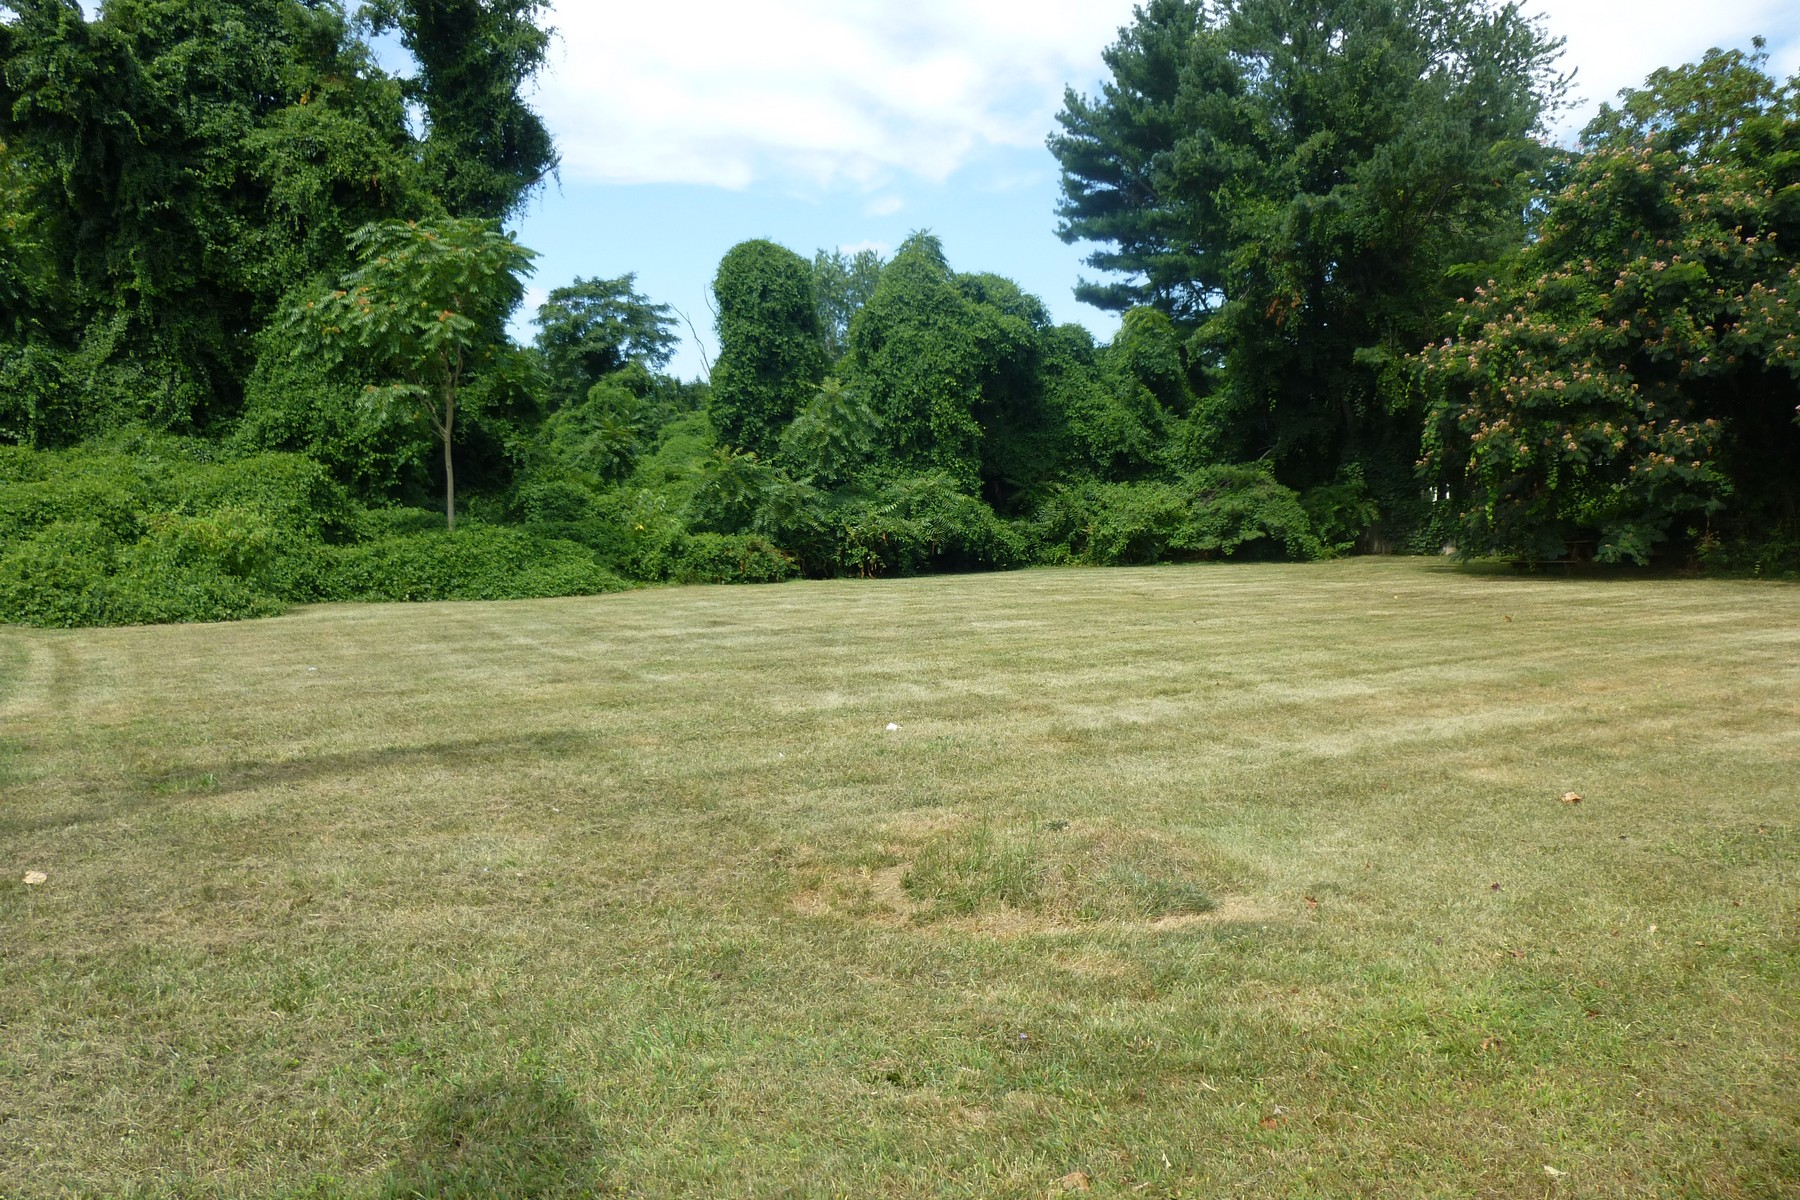 Land for Sale at Residential Commercial LAND FOR SALE 57 Apple St Tinton Falls, New Jersey 07724 United States